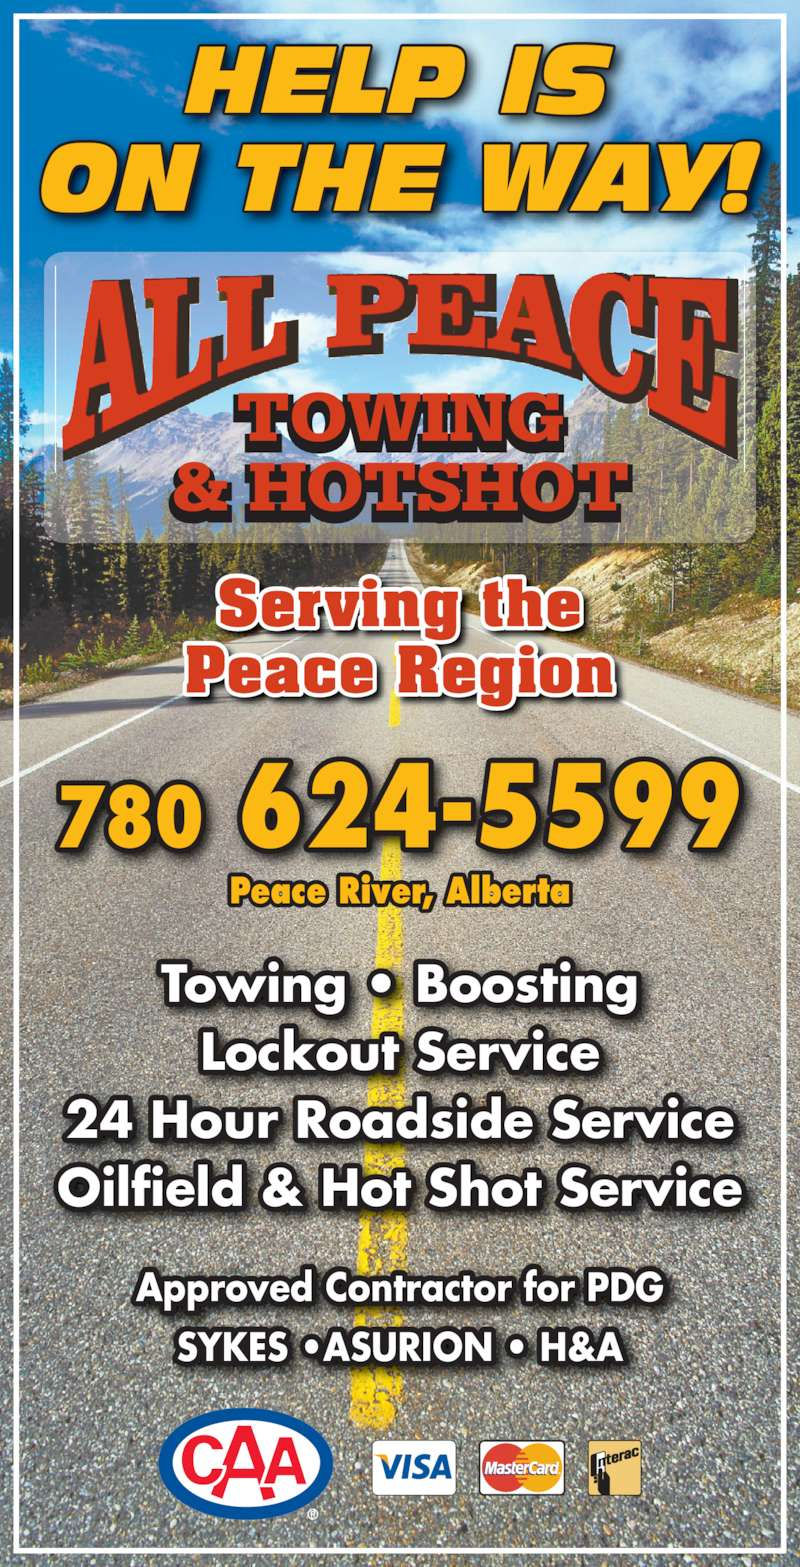 All Peace Towing & Hotshot (780-624-5599) - Display Ad - Lockout Service 24 Hour Roadside Service Oilfield & Hot Shot Service Approved Contractor for PDG SYKES •ASURION • H&A HELP IS ON THE WAY! TOWING & HOTSHOT Serving the Peace Region 780 624-5599 Peace River, Alberta Towing • Boosting